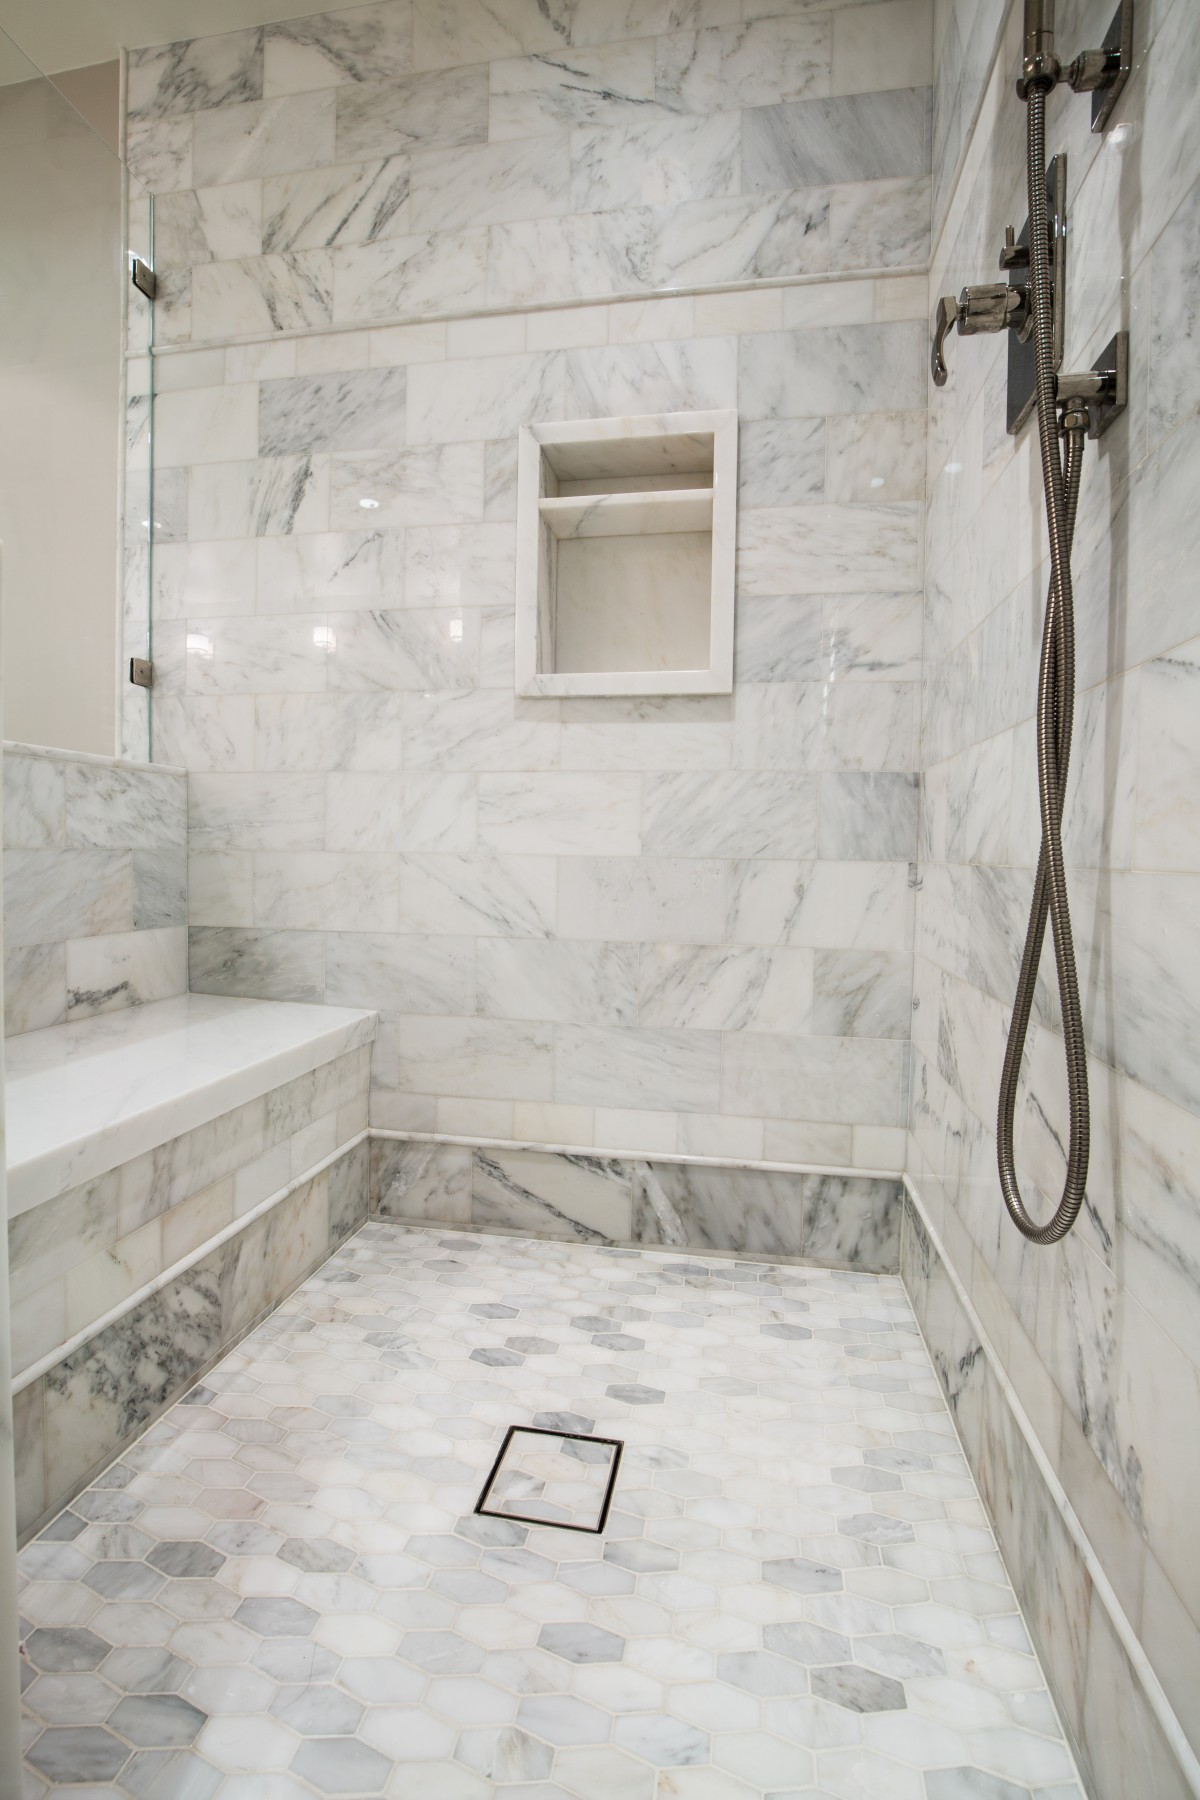 New Details of the Asian Statuary marble shower - Nott & Associates TP38